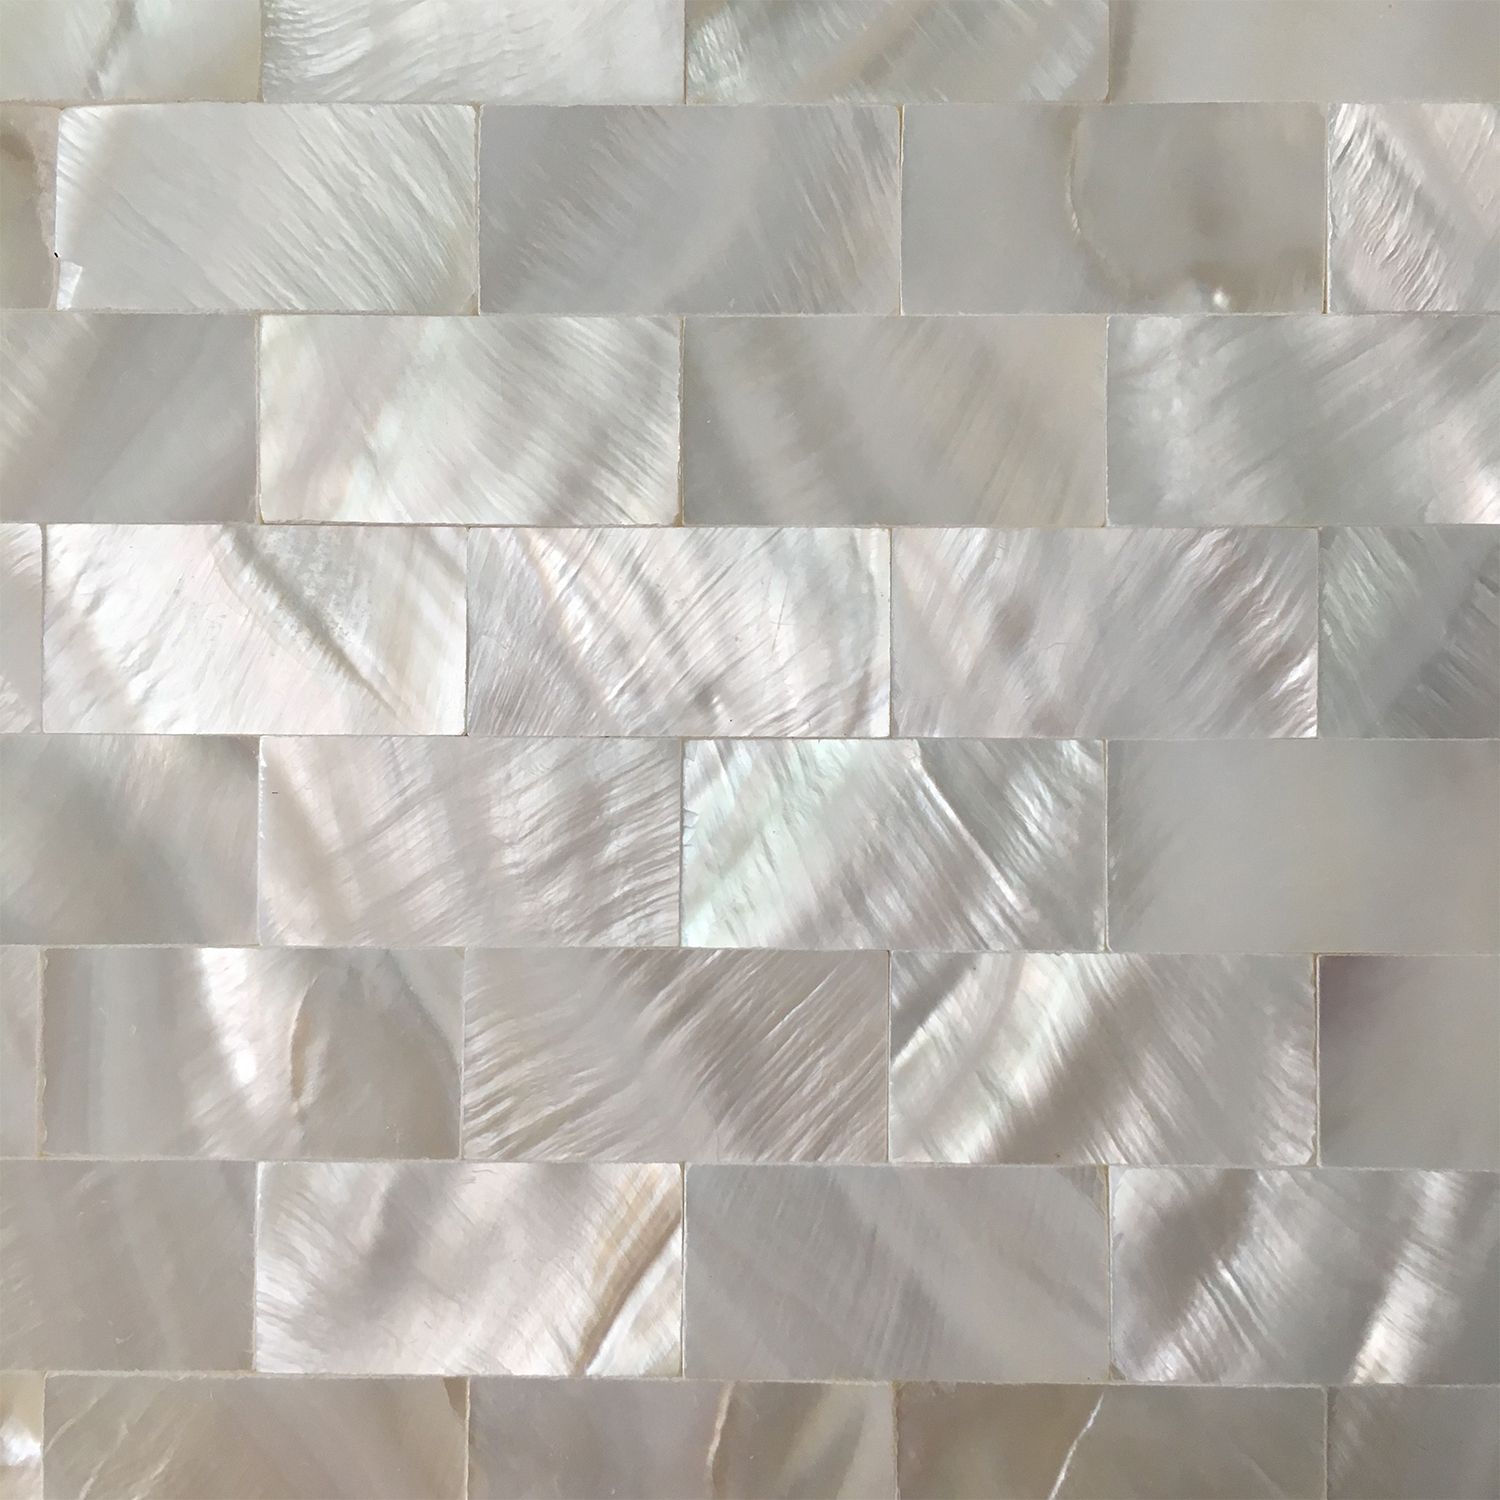 Art3d peel and stick kitchen backsplash tile mother of pearl shell art3d peel and stick kitchen backsplash tile mother of pearl shell mosaic 12 x 12 white subway self adhesive tile walmart dailygadgetfo Images